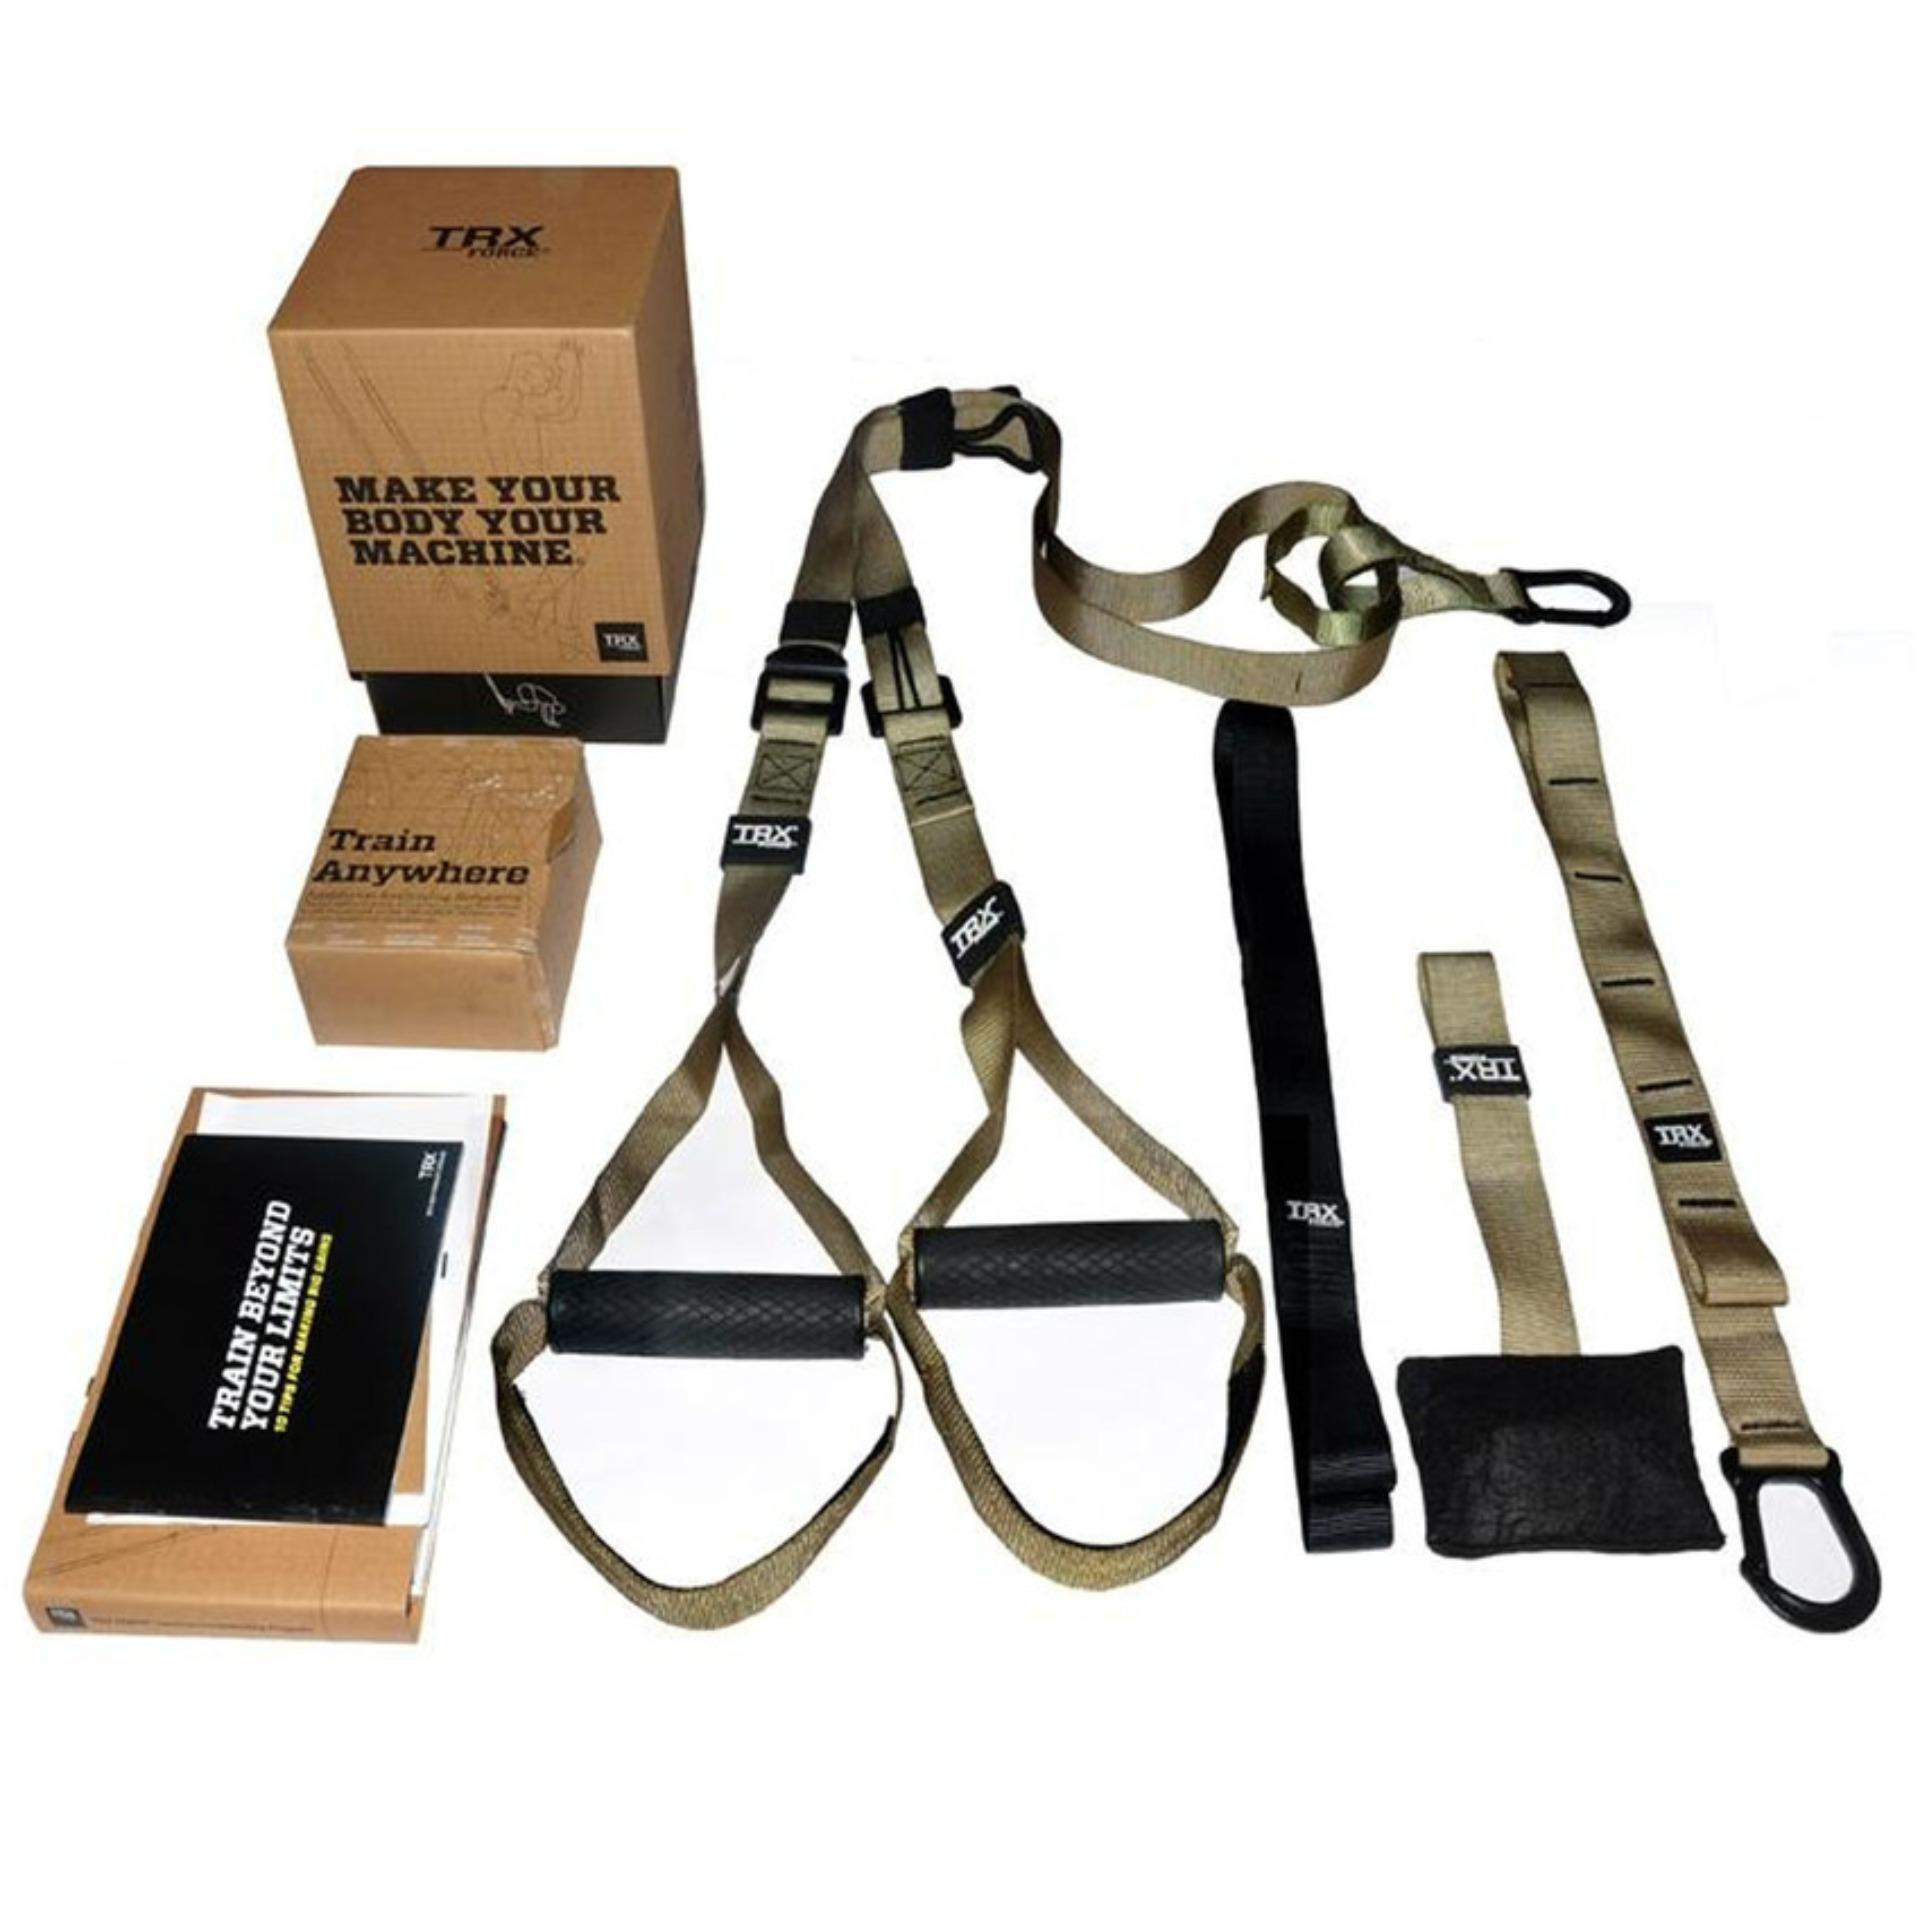 Philippines Fitness Exercise Equipment Pro T R X Suspension Hang Trx Tactical Force Kit Resistance Bands Trainer Crossfit Training Kits Portable Home Gym